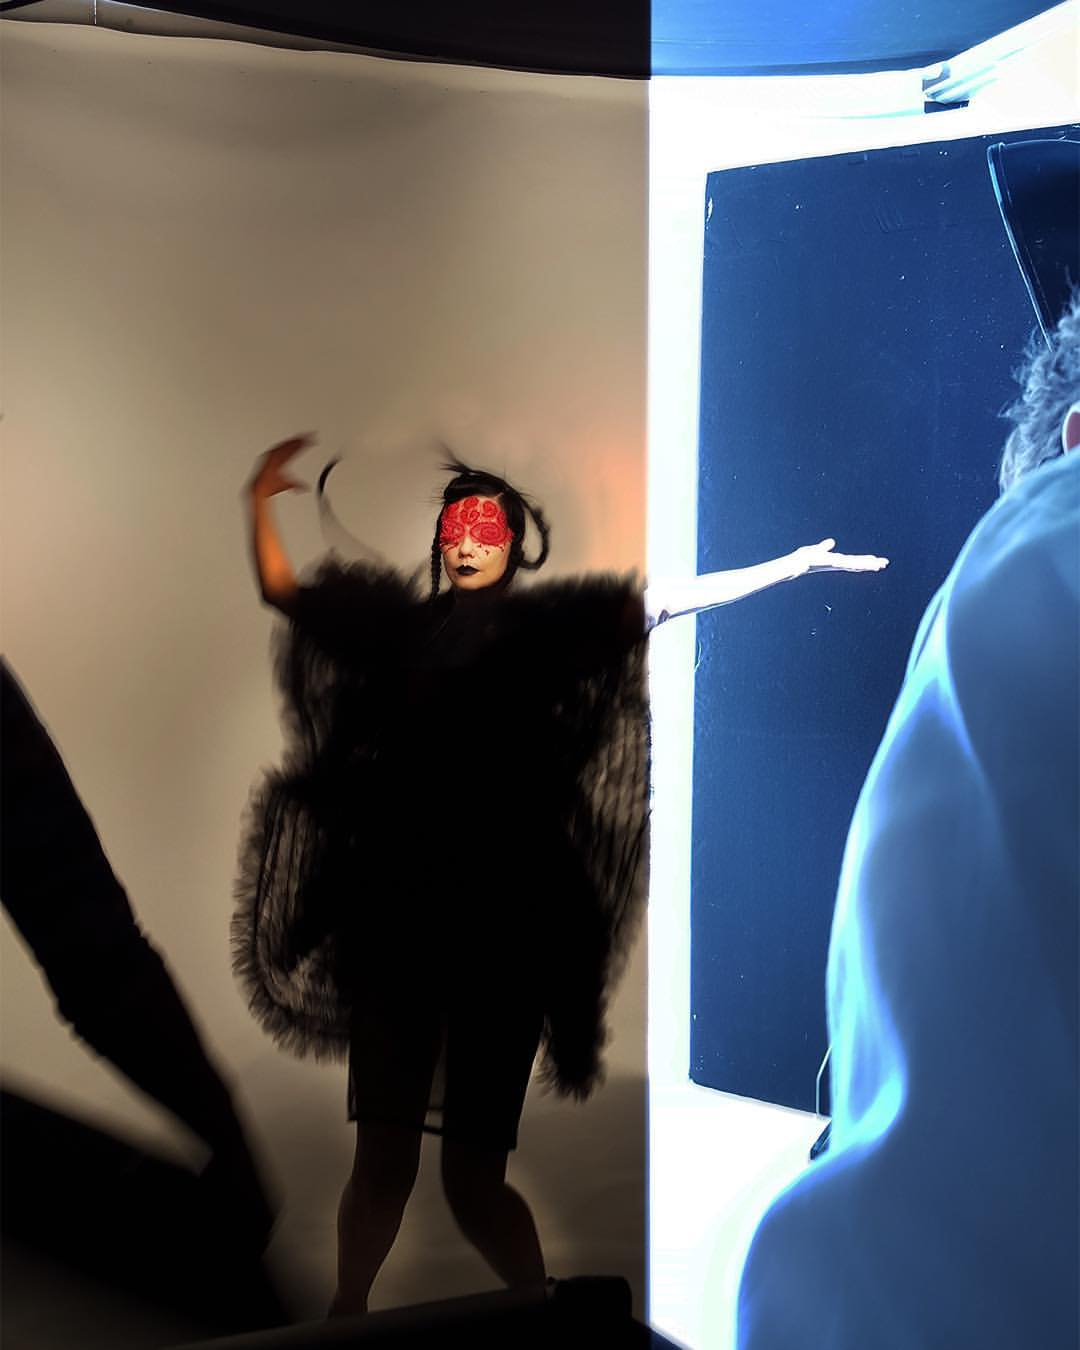 bjork-nick-knight-showstudio-session-201